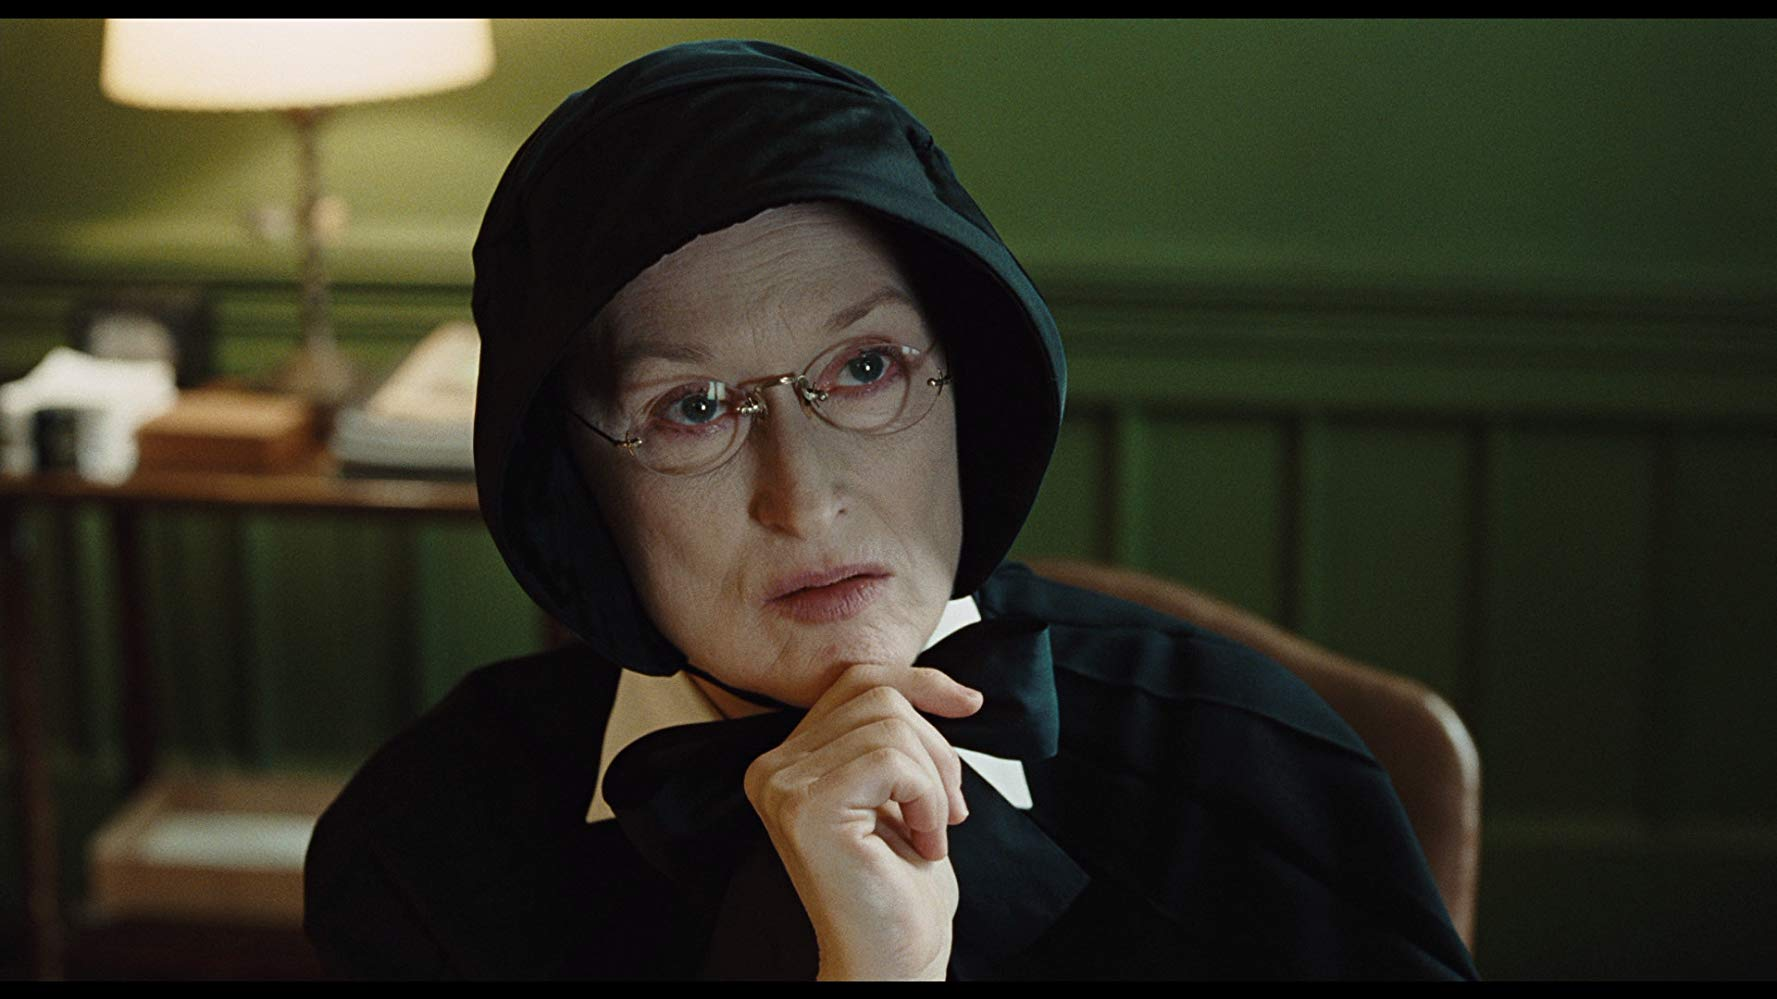 Meryl Streep as Sister Aloysius in the 2008 movie Doubt